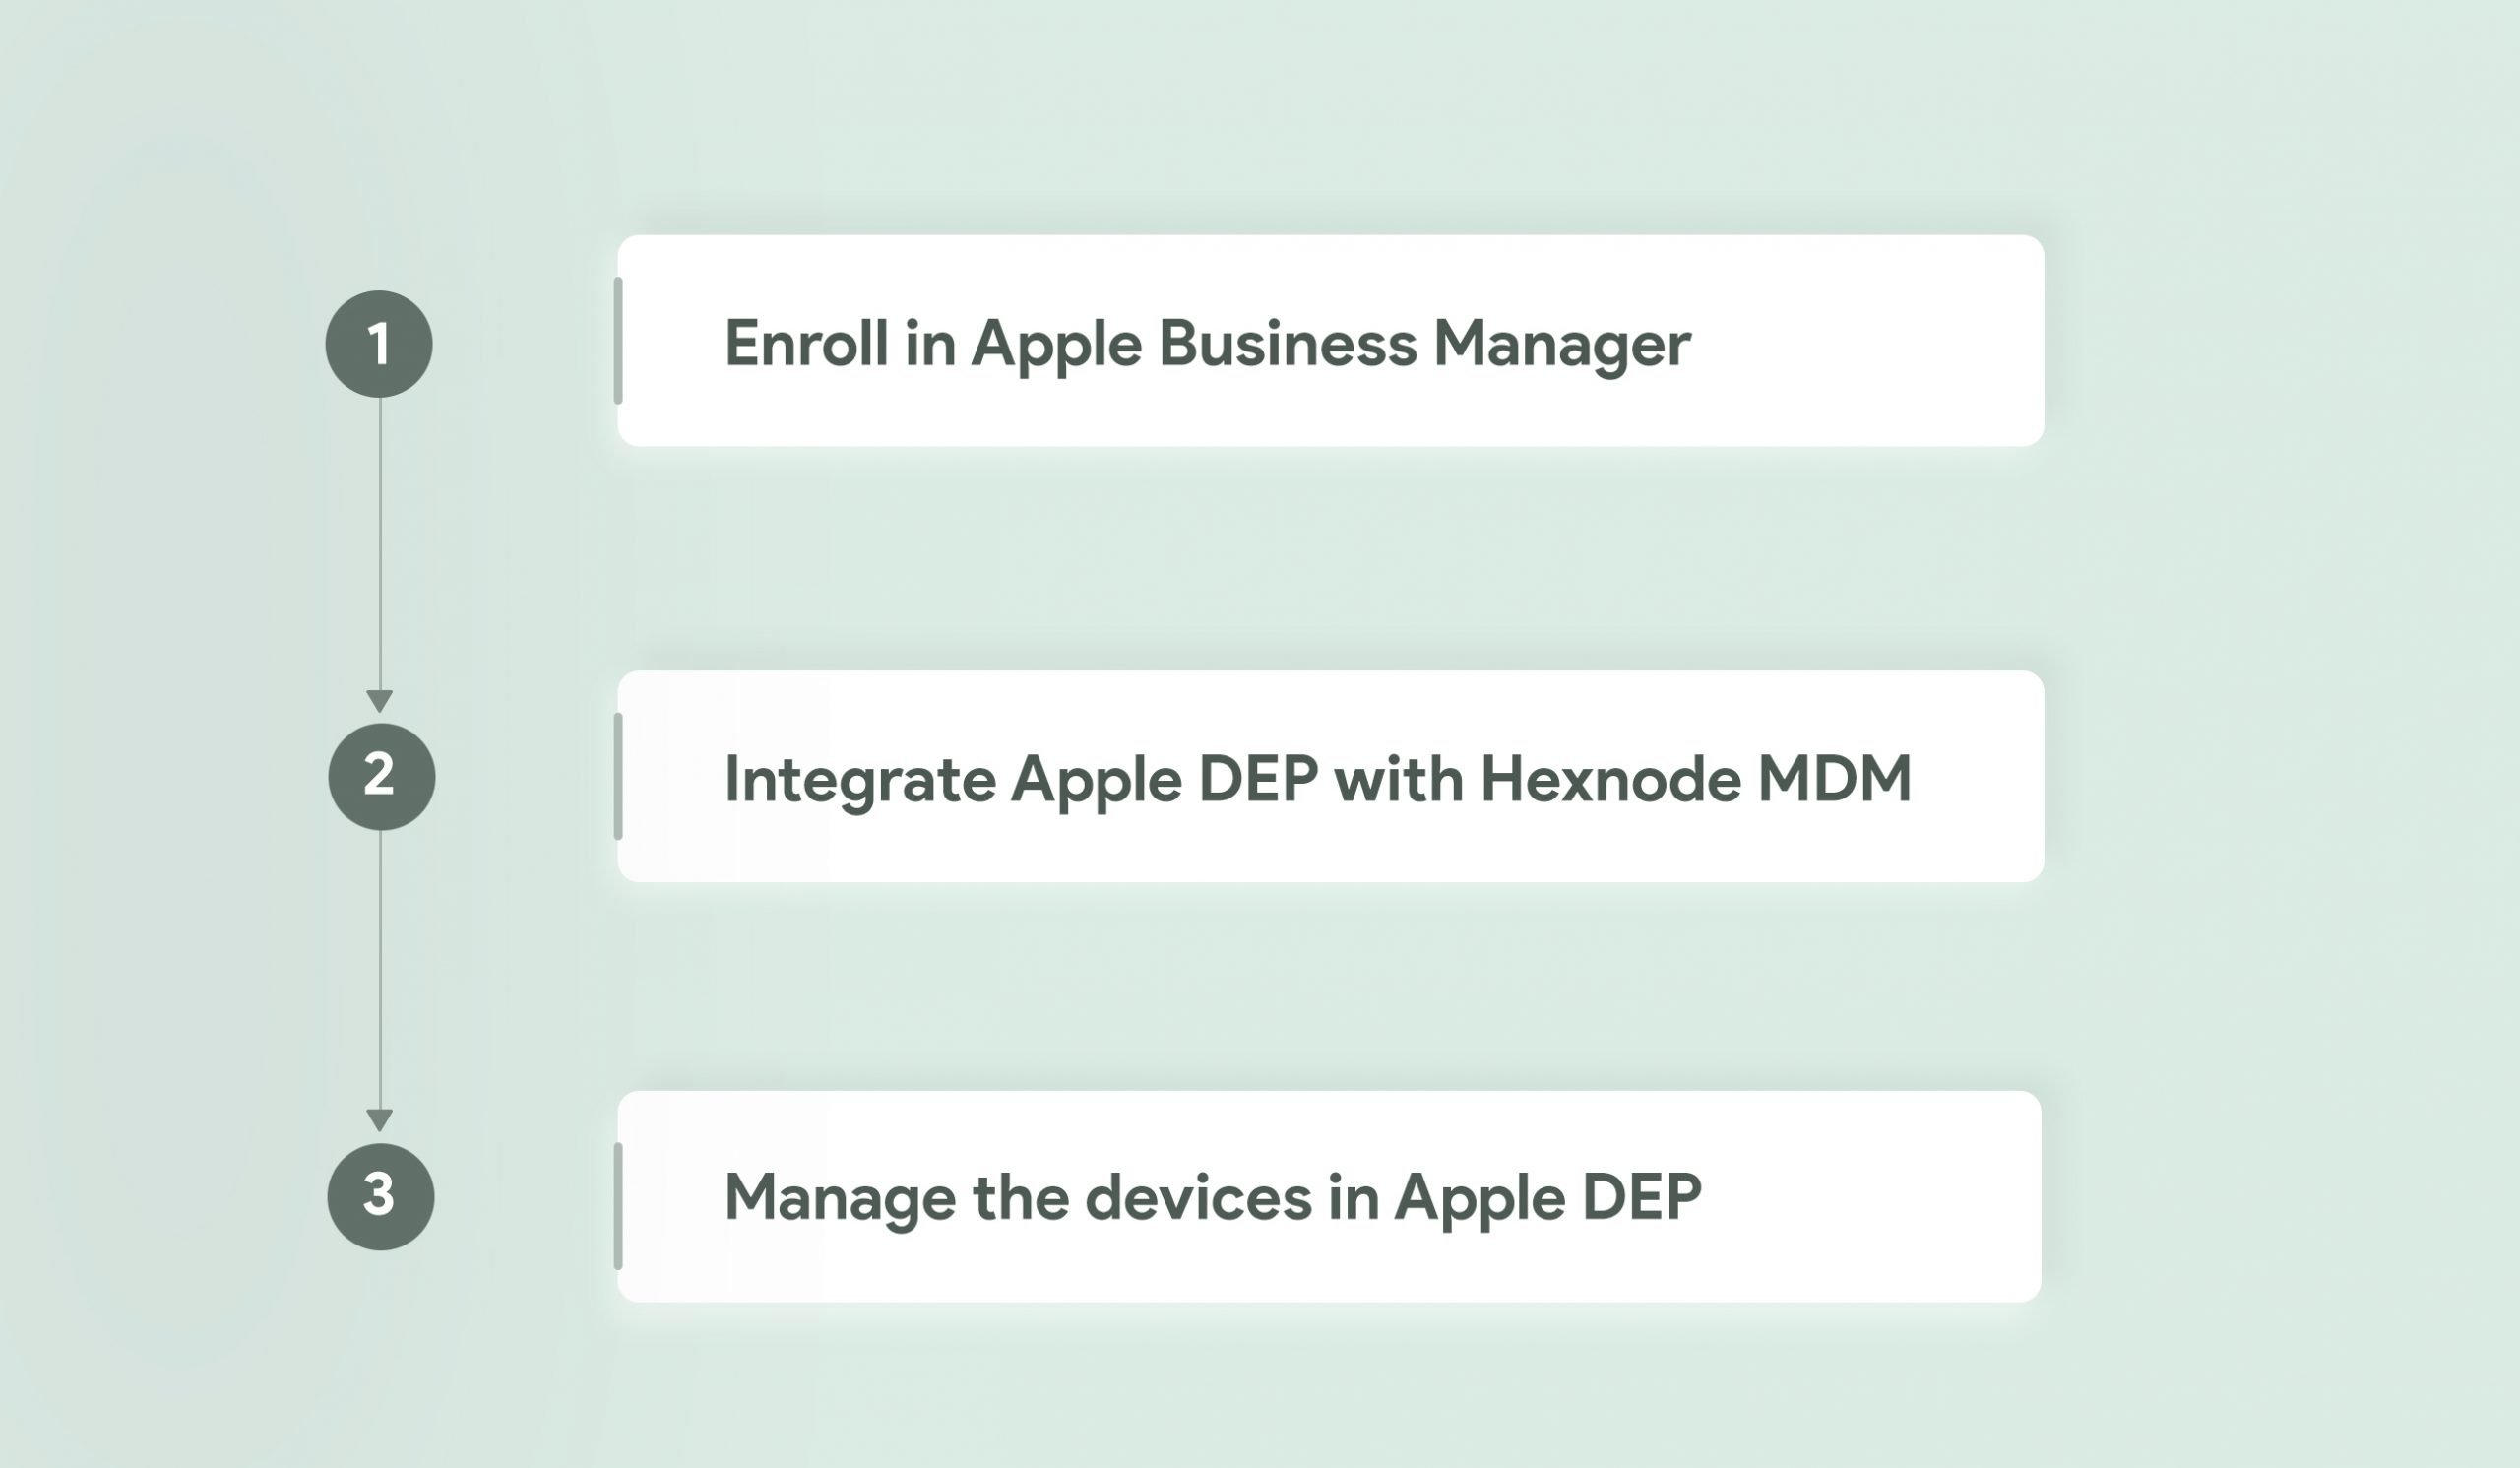 Steps involved in enrolling devices via DEP